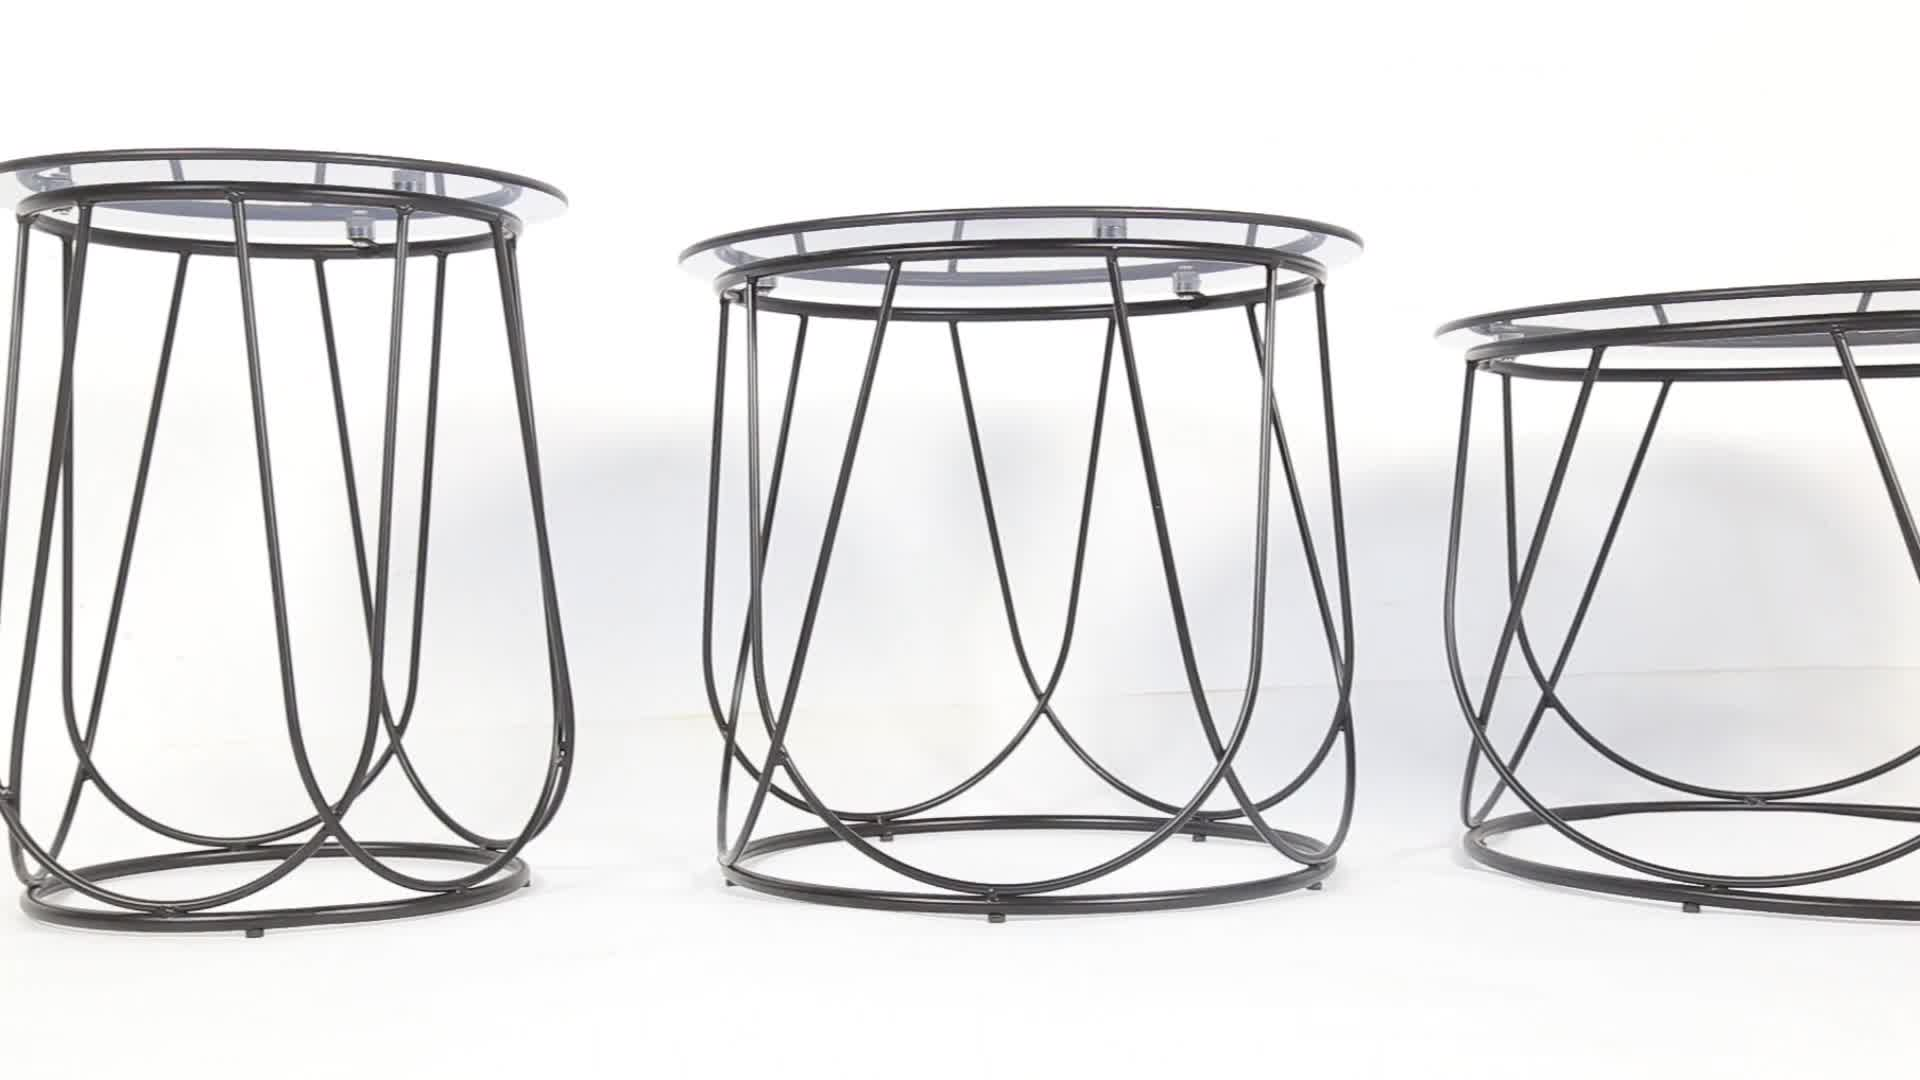 hot Living Room Furniture SANQIANG Modern style home accent metal wire side coffee table/network wire base coffee table